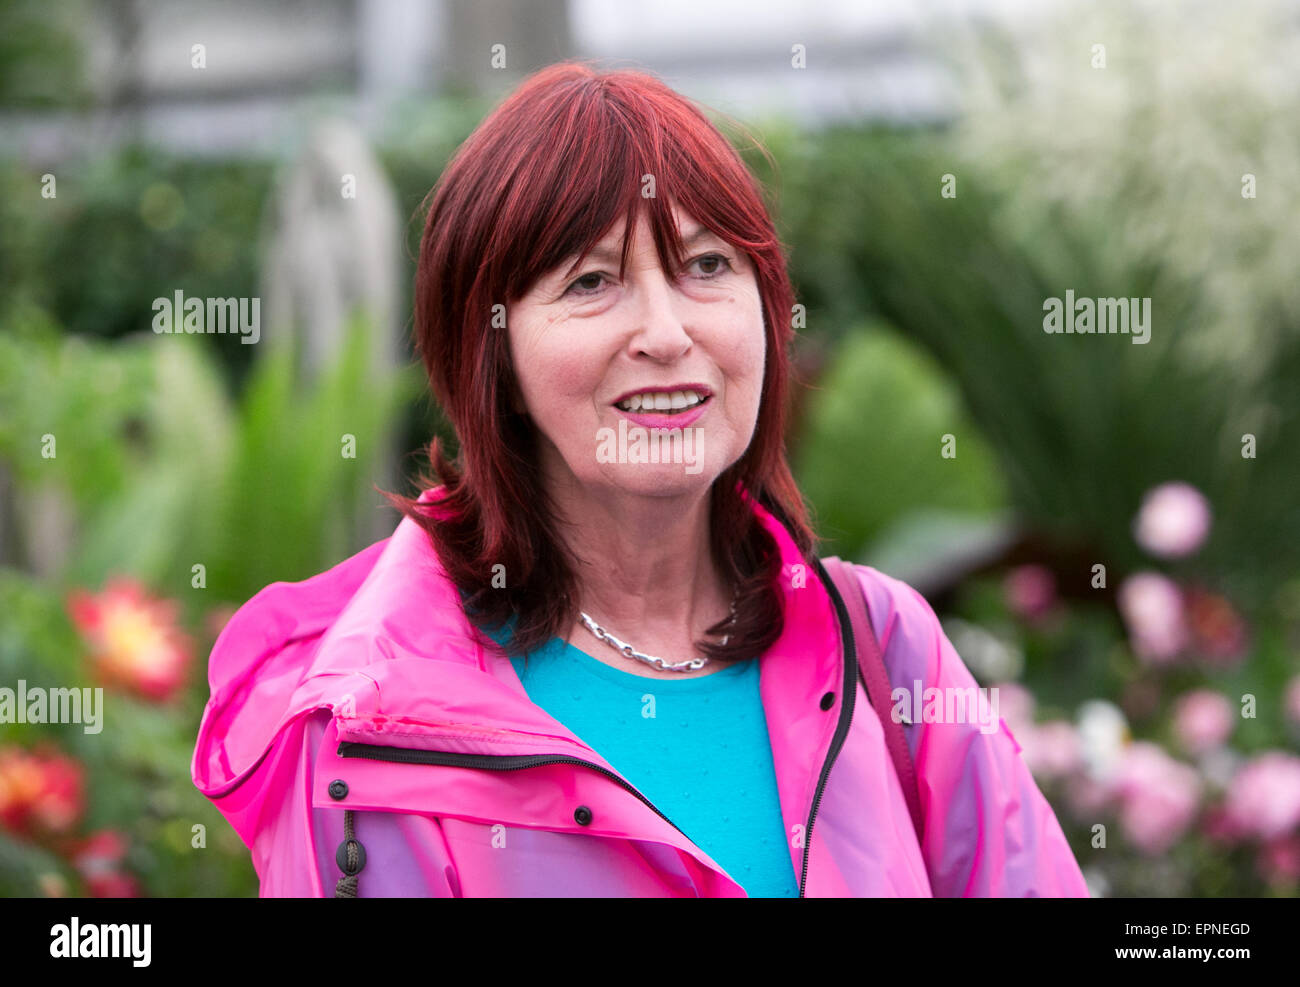 Janet Street-Porter at the RHS Chelsea Flower Show.She is a journalist and reporter and former editor of the Independent - Stock Image